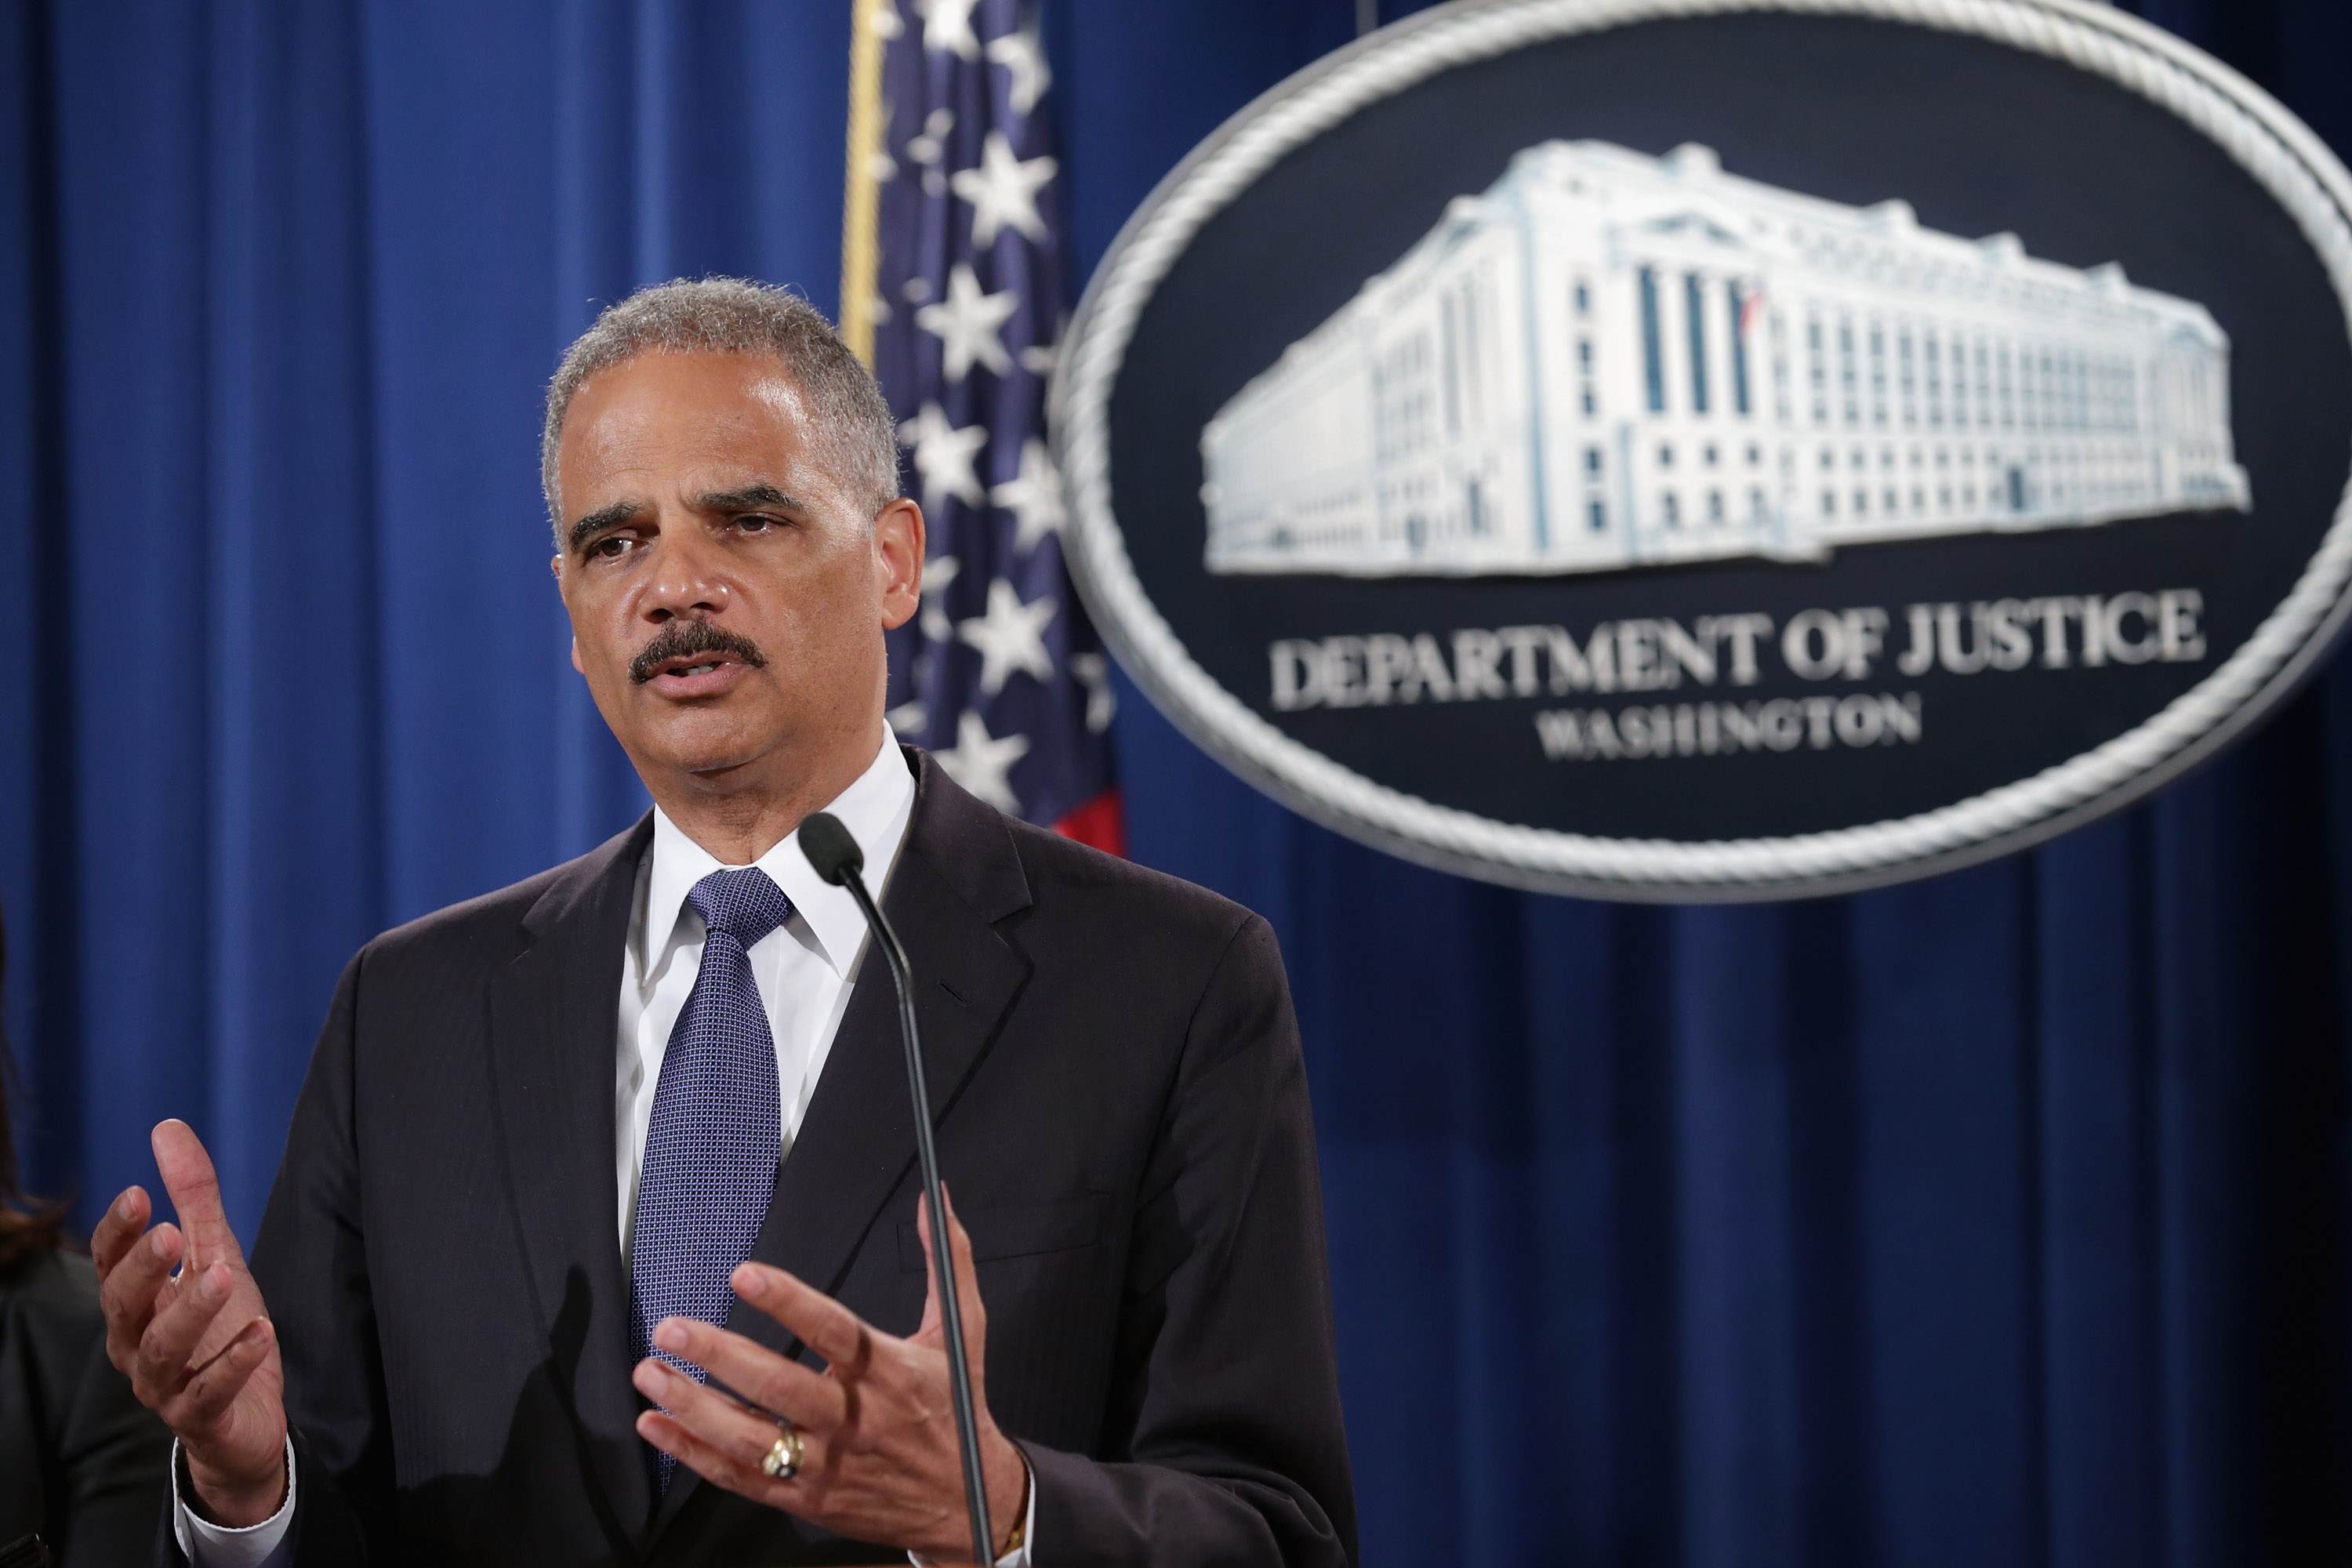 U.S. Attorney General Eric Holder announces a Justice Department 'patterns and practice' investigation of the Ferguson, Missouri, police department during a news conference at the department's headquarters Sept. 4, 2014 in Washington, DC.